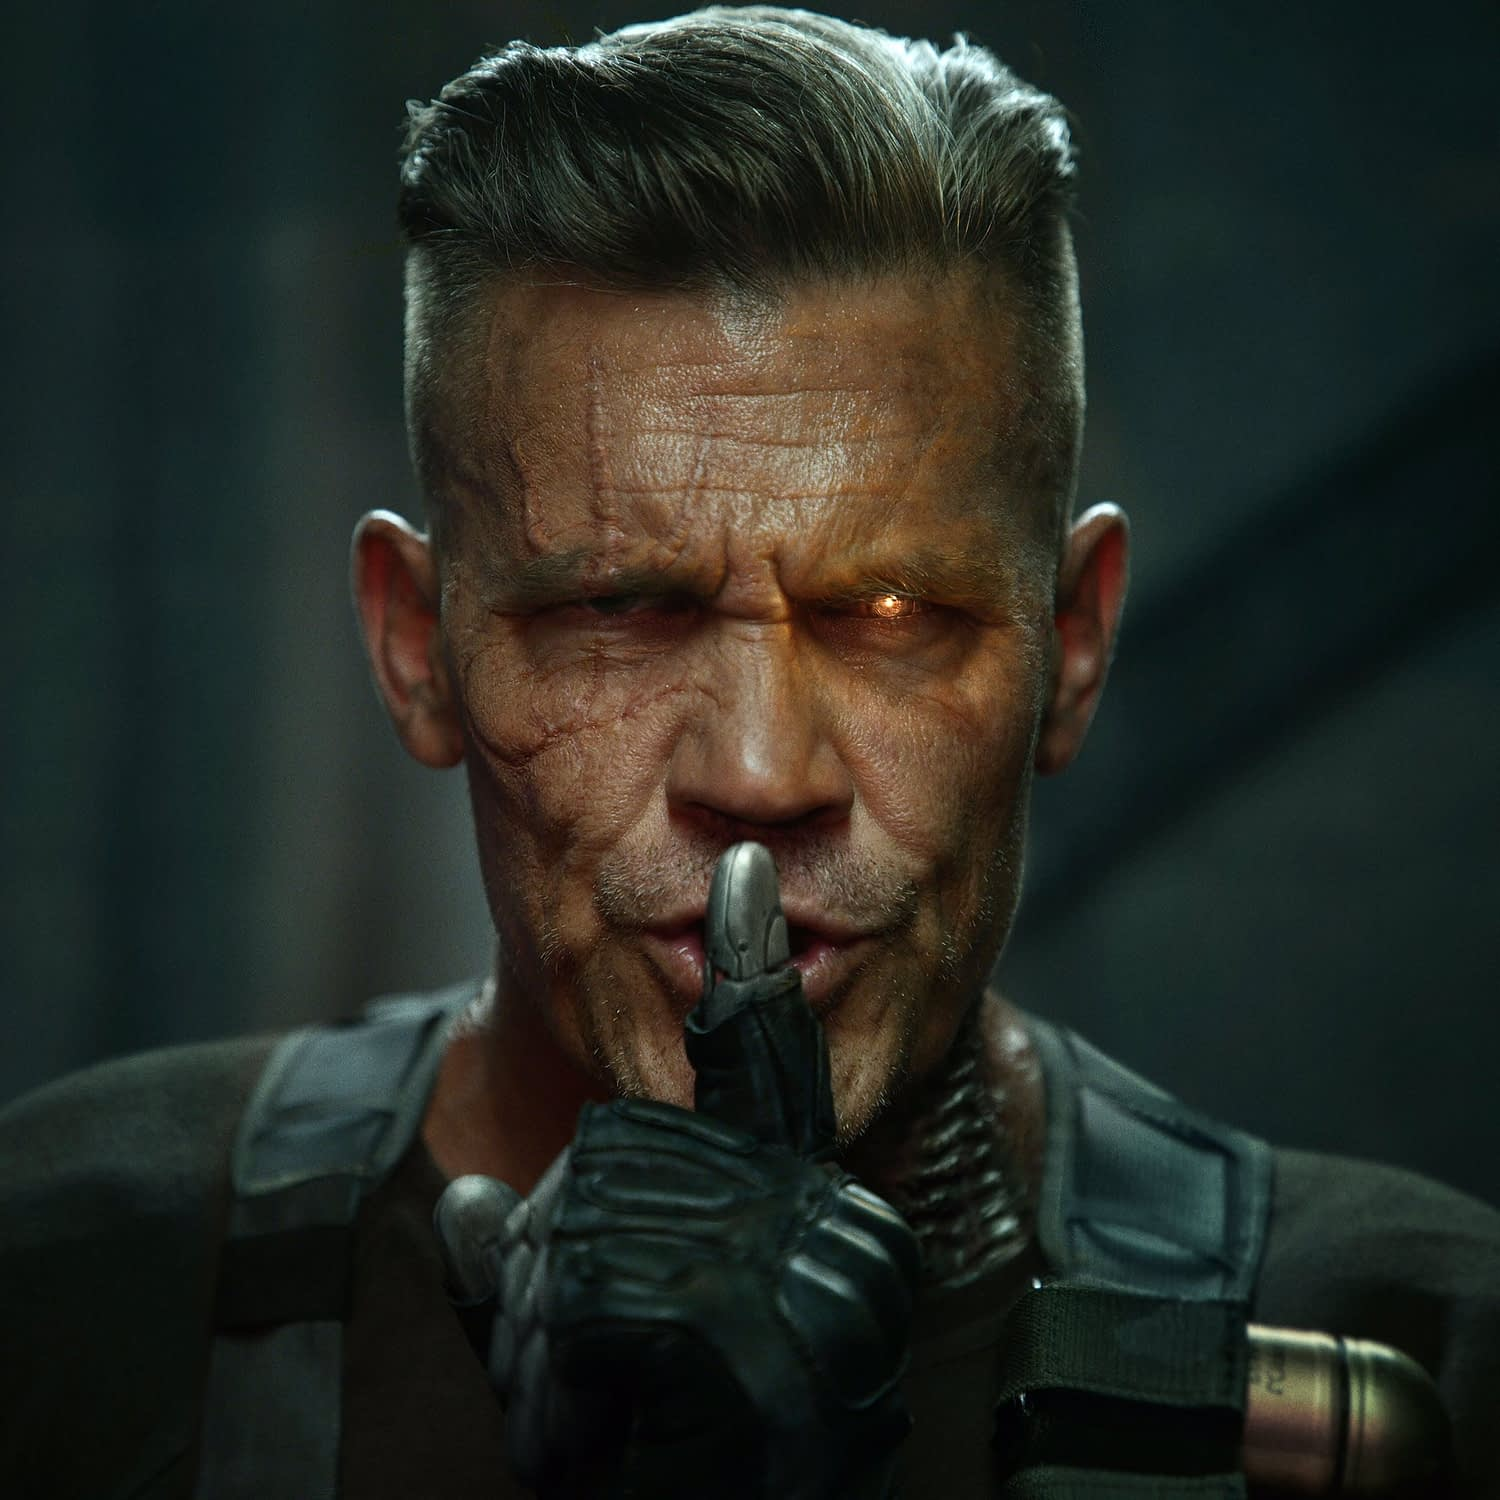 Deadpool 2: Josh Brolin's Cable Doesn't Look Happy In New Image